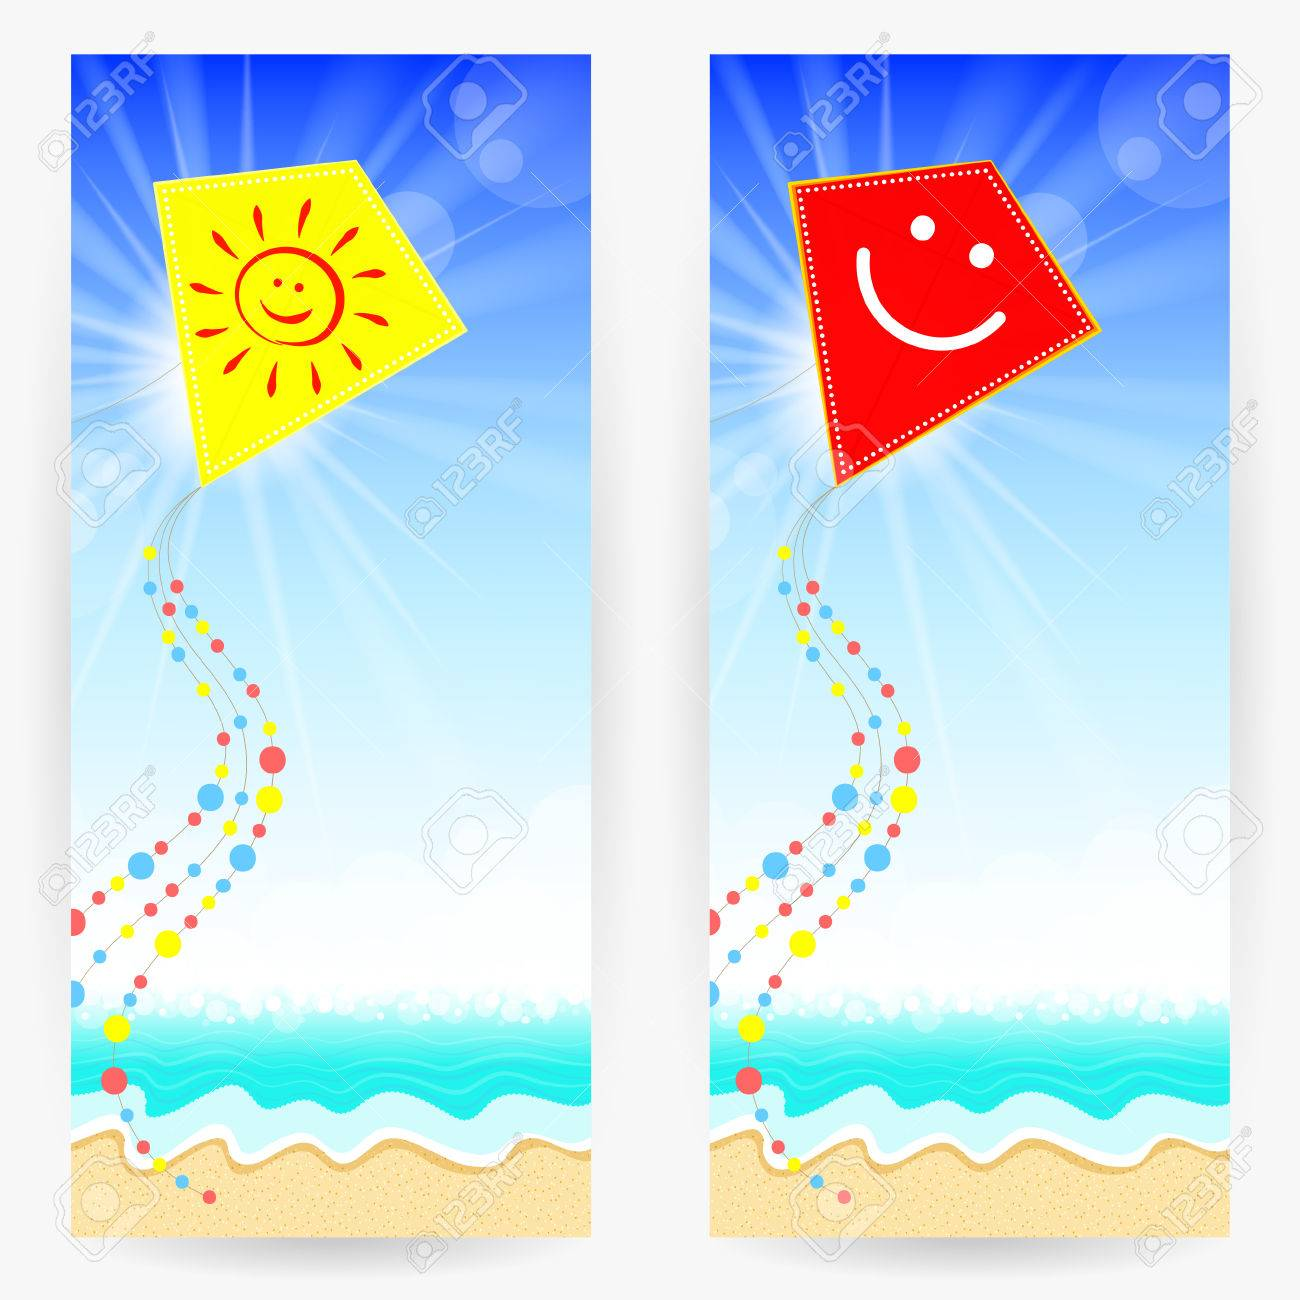 Two Summer Backgrounds With Sandy Beach Blue Sea Bright Sky And Kites Yellow